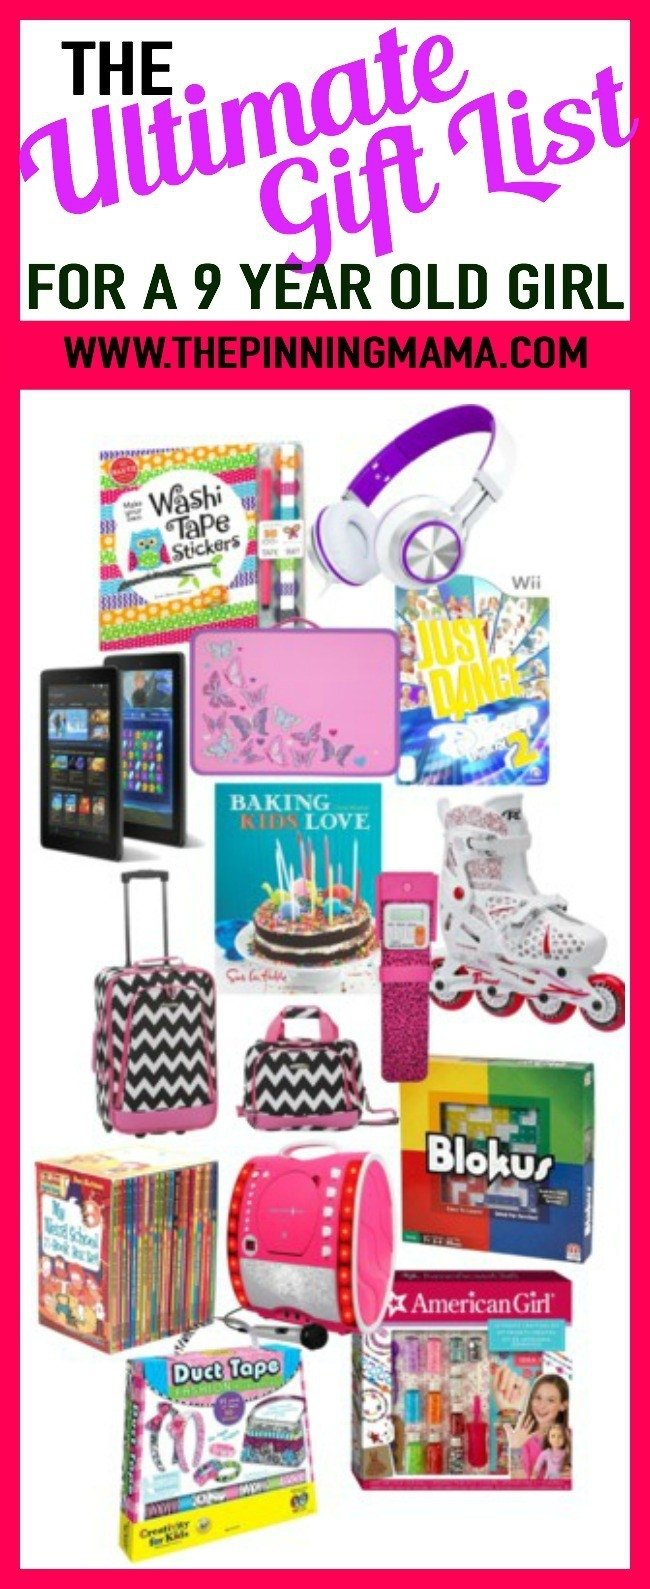 10 Lovely Gift Ideas For 6 Year Old Girl the ultimate gift list for a 9 year old girl top toys girls age 9 8 2021